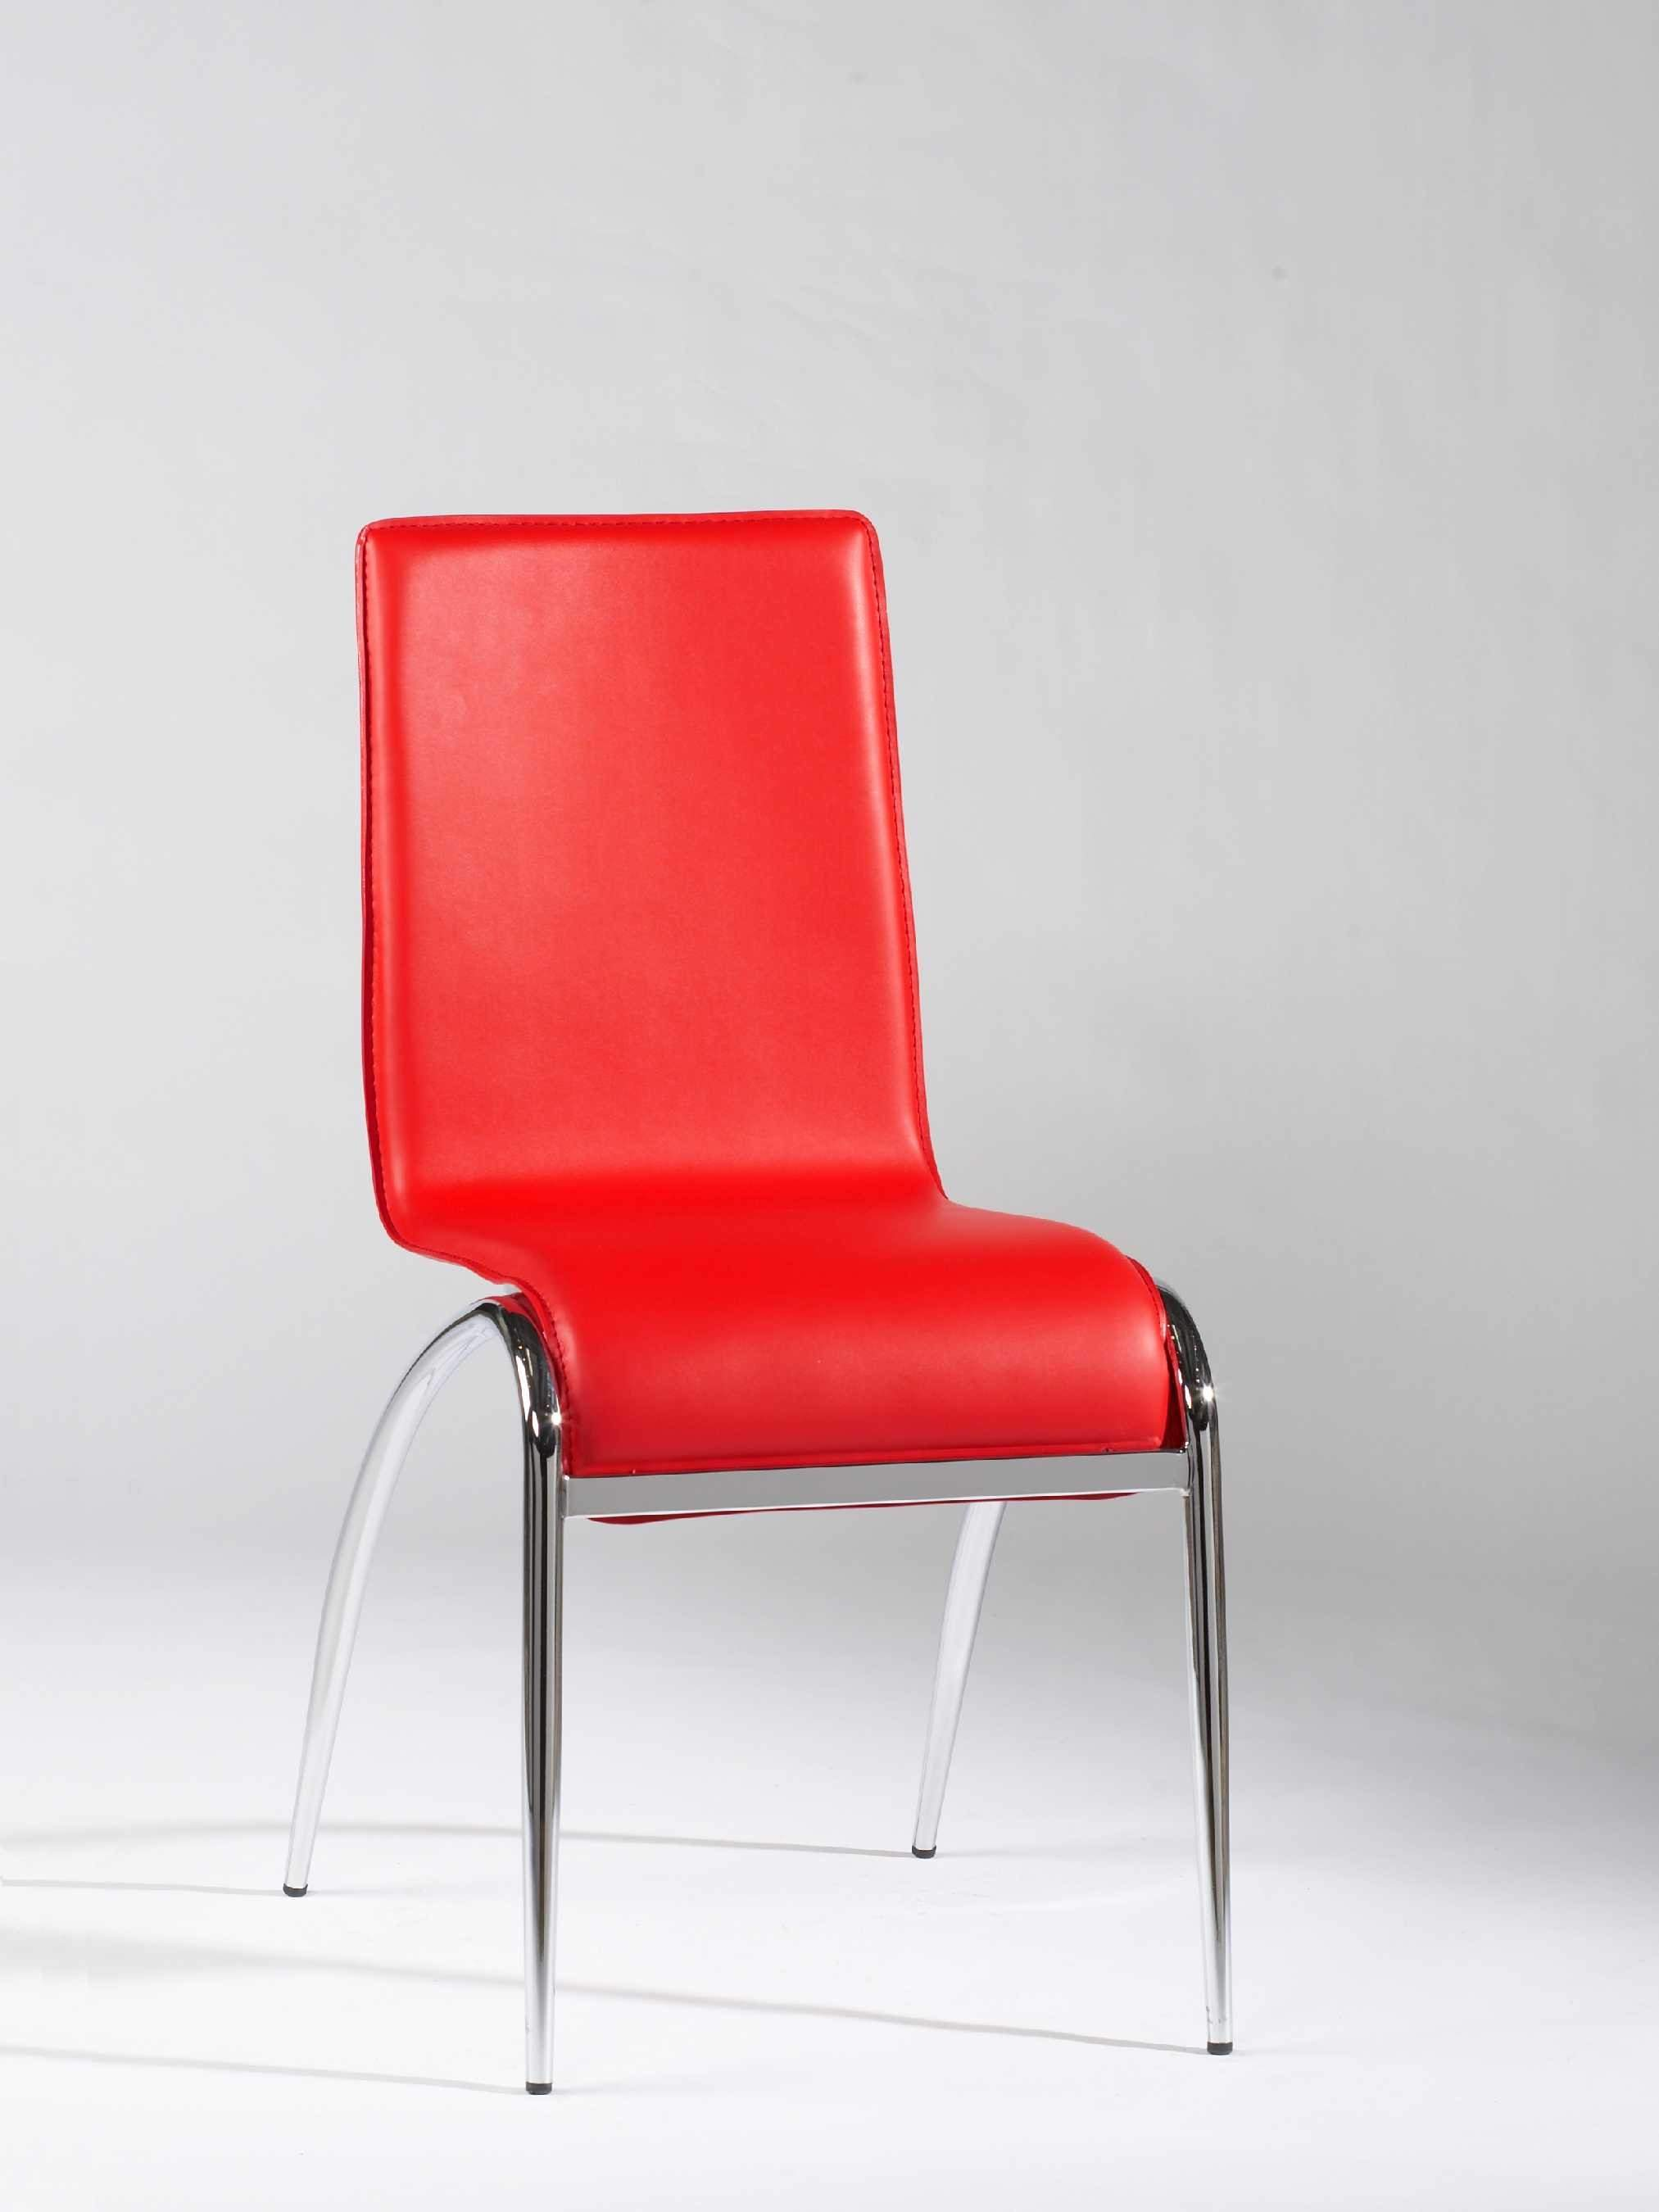 cheap hand chair stylist mats stylish red white black leatherette dining with metal legs contemporary chairs dinette furniture